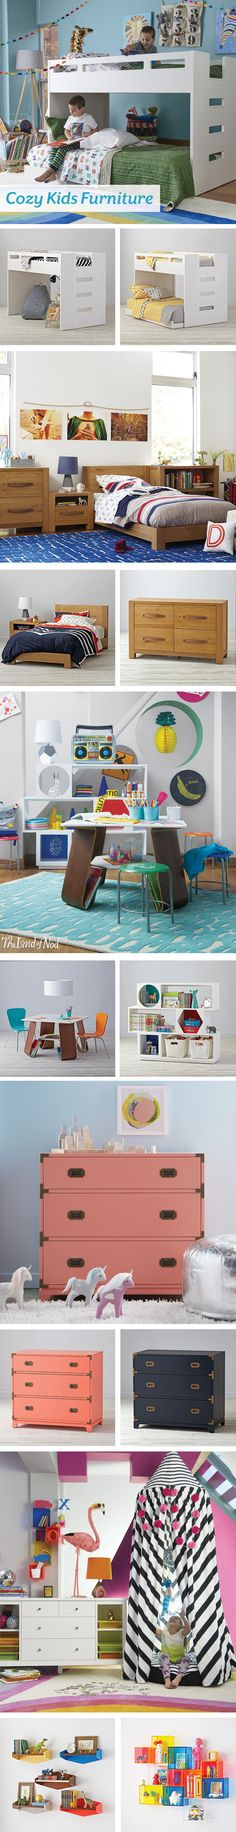 Refresh your kids bedroom with our new spring furniture collection. Our lineup of stylish kids furniture features tons of picks for the playroom or workspace. But if your girl or boy's bedroom needs an update, start with a bed as a focal point. A bunk bed, trundle bed or classic twin bed will get the job done. Then, add a dresser and bookcase for more storage options. And, if you need even more space, a toy box and bench will hold all of their favorite essentials.